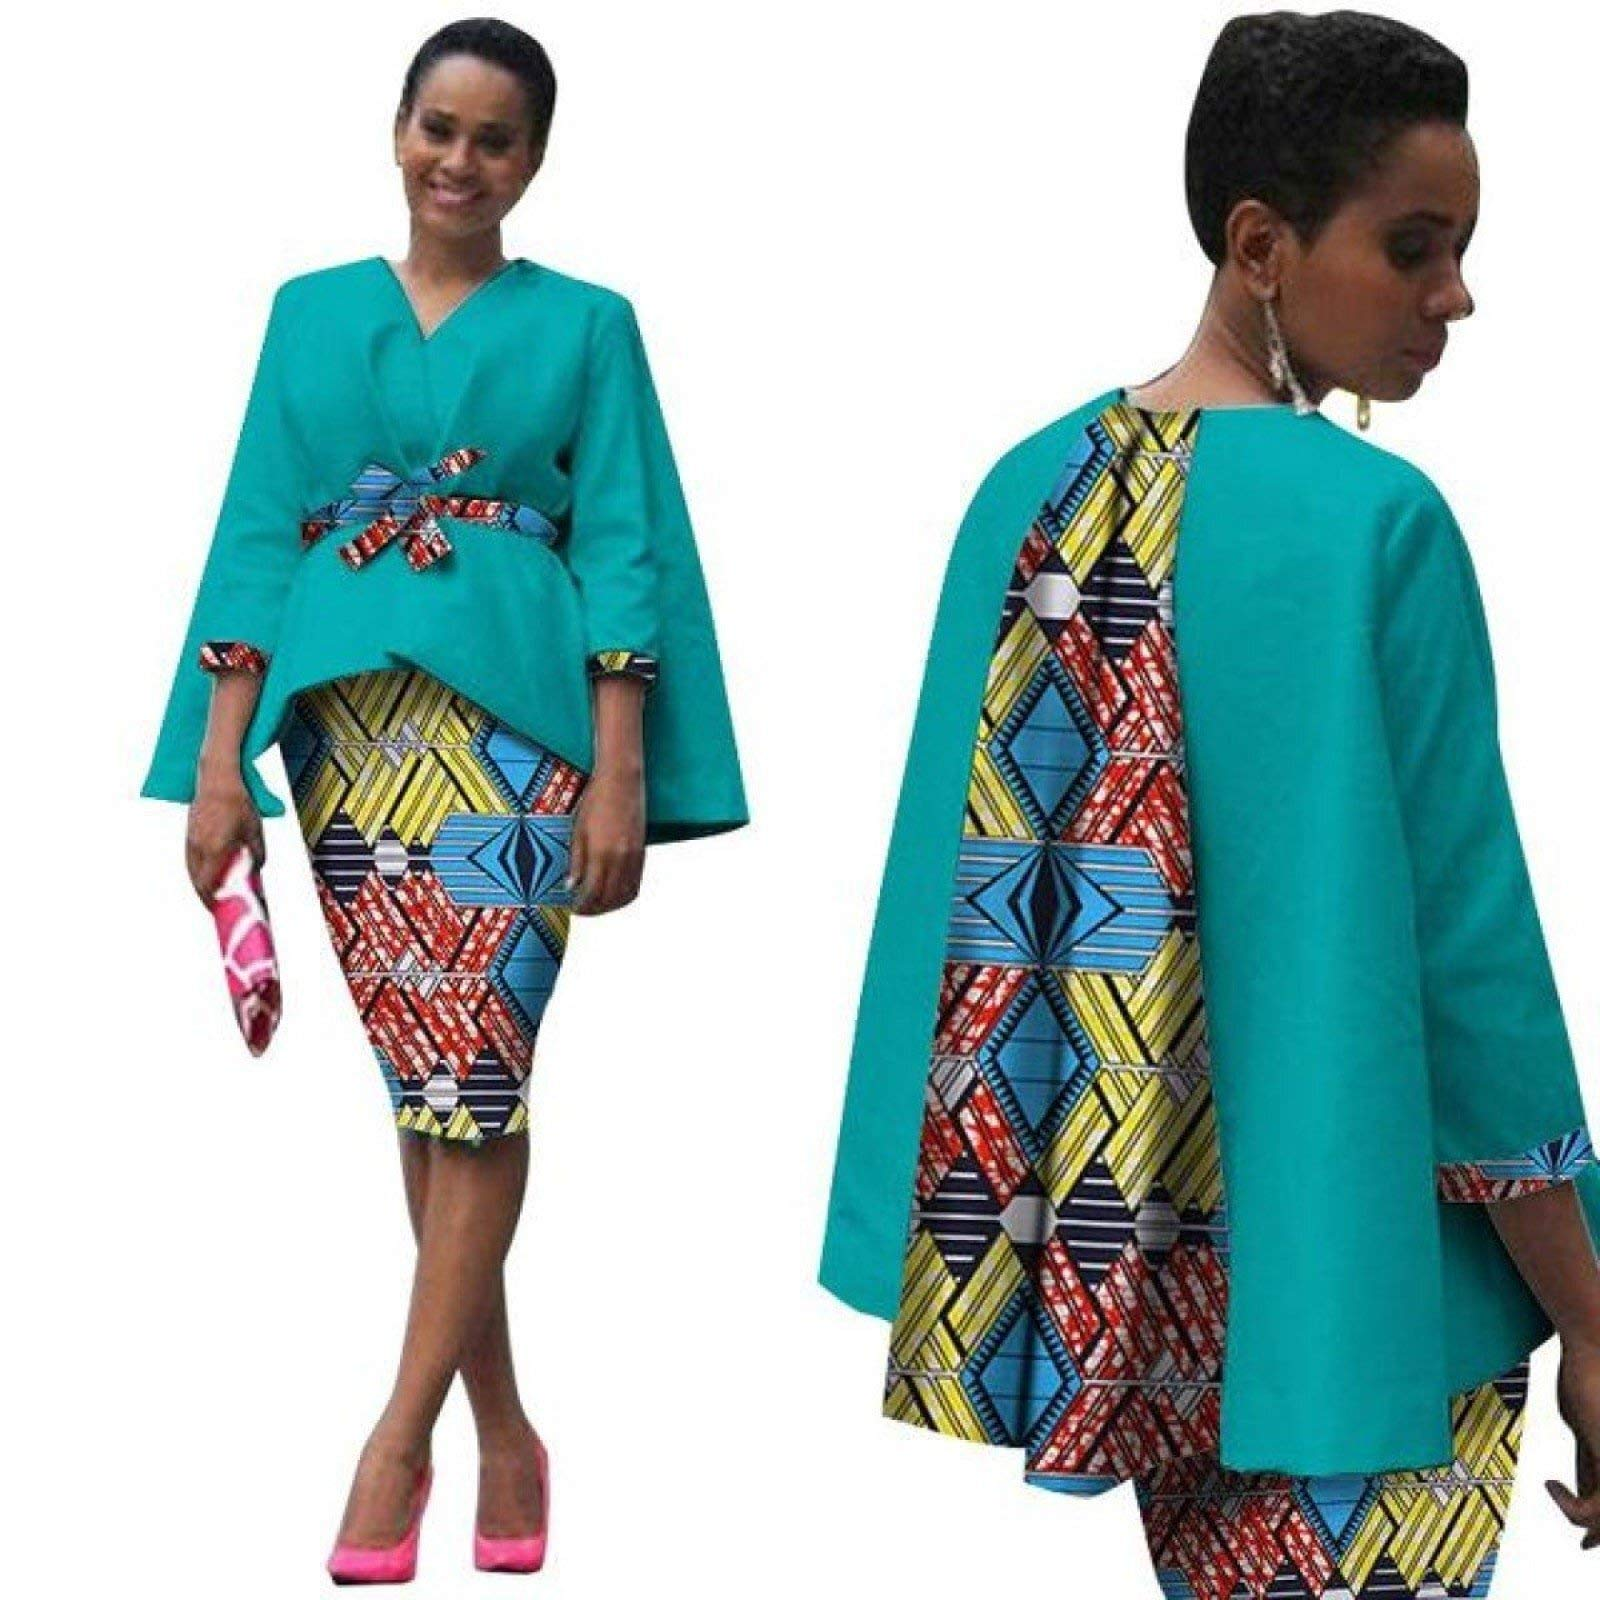 African Clothing 2Pc Set Dress Suit for Women Tops Jacket+ Print Skirt X151283